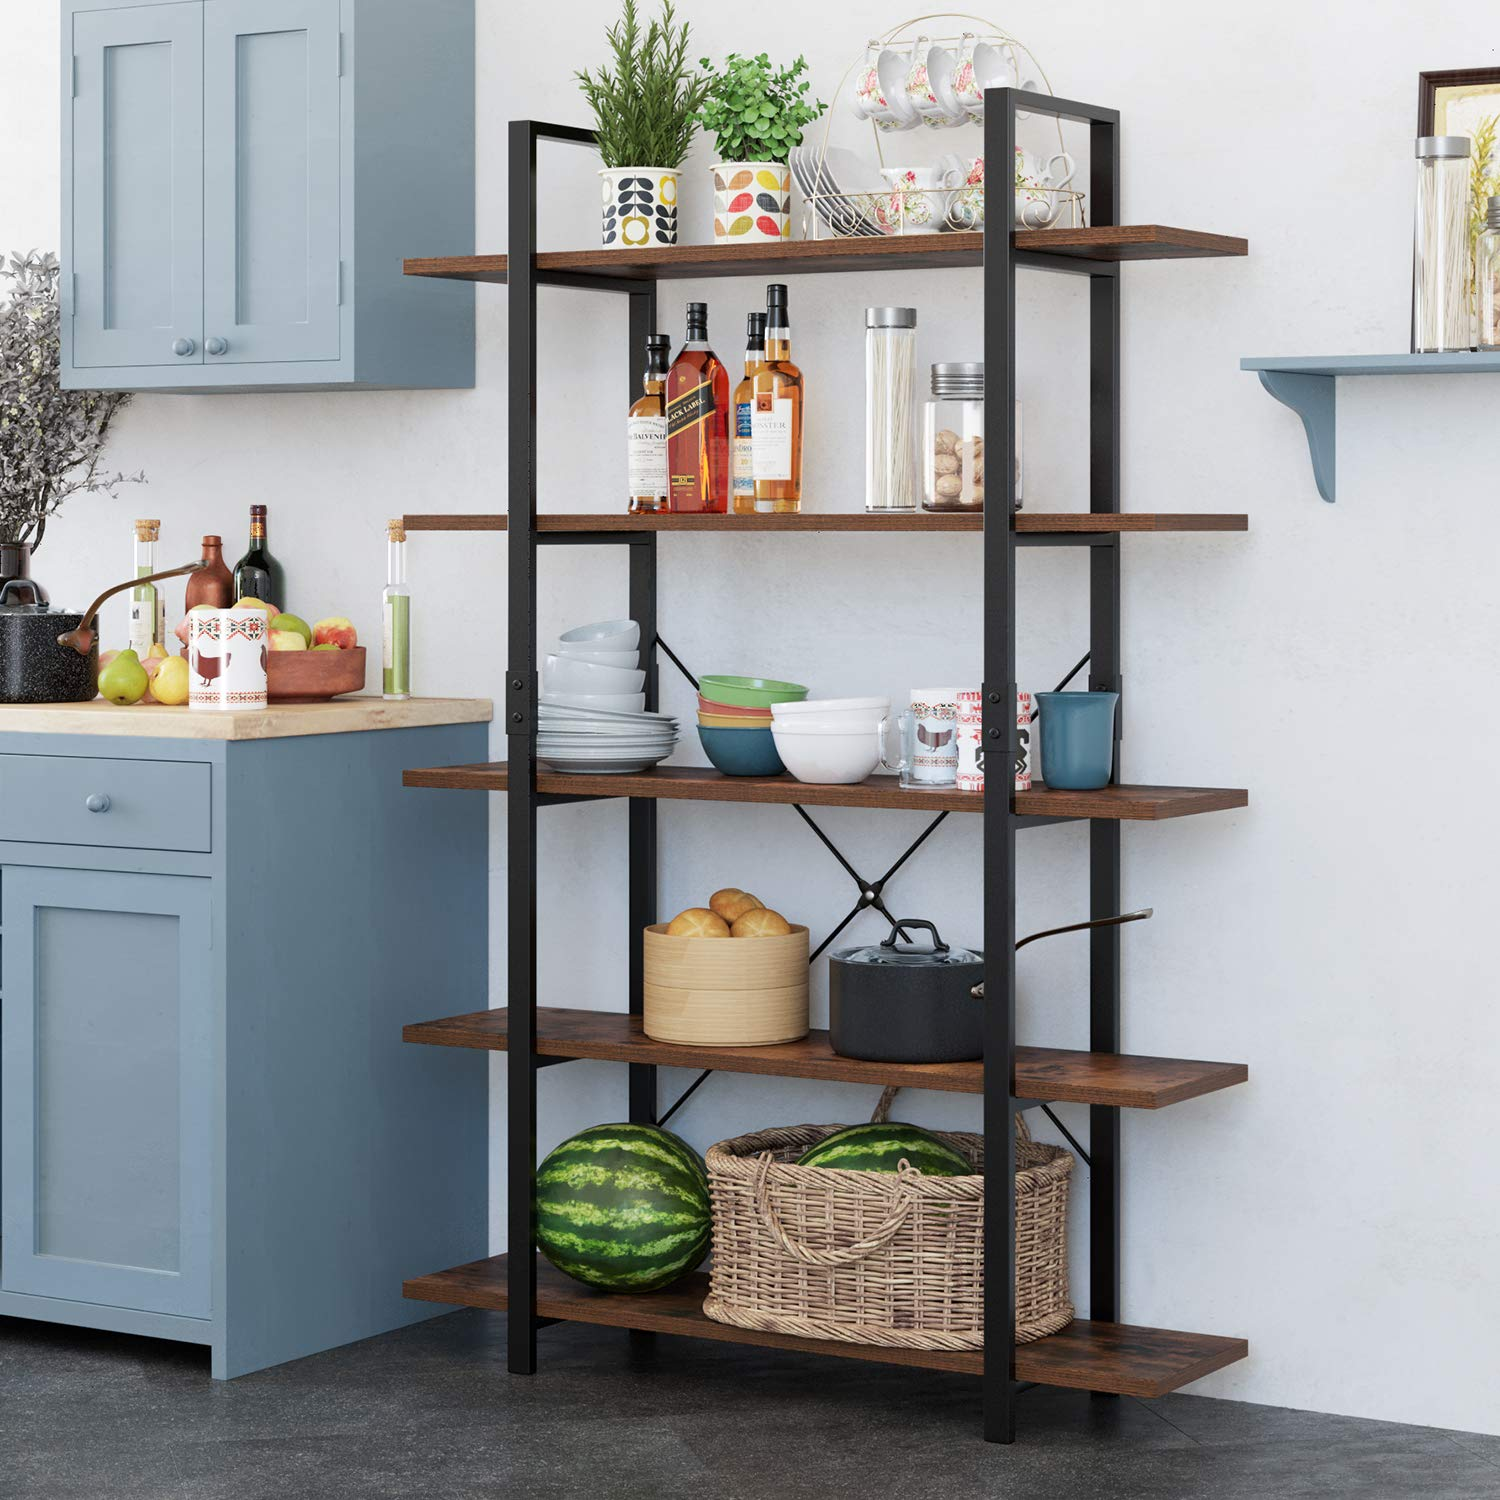 Homfa Bookshelf, 5-Tier Industrial Bookcase, Open Storage Display Shelves Organizer, Accent Furniture with Wood Grain Shelves and Metal Frame for Home Office, 47L x 13W x 70H by Homfa